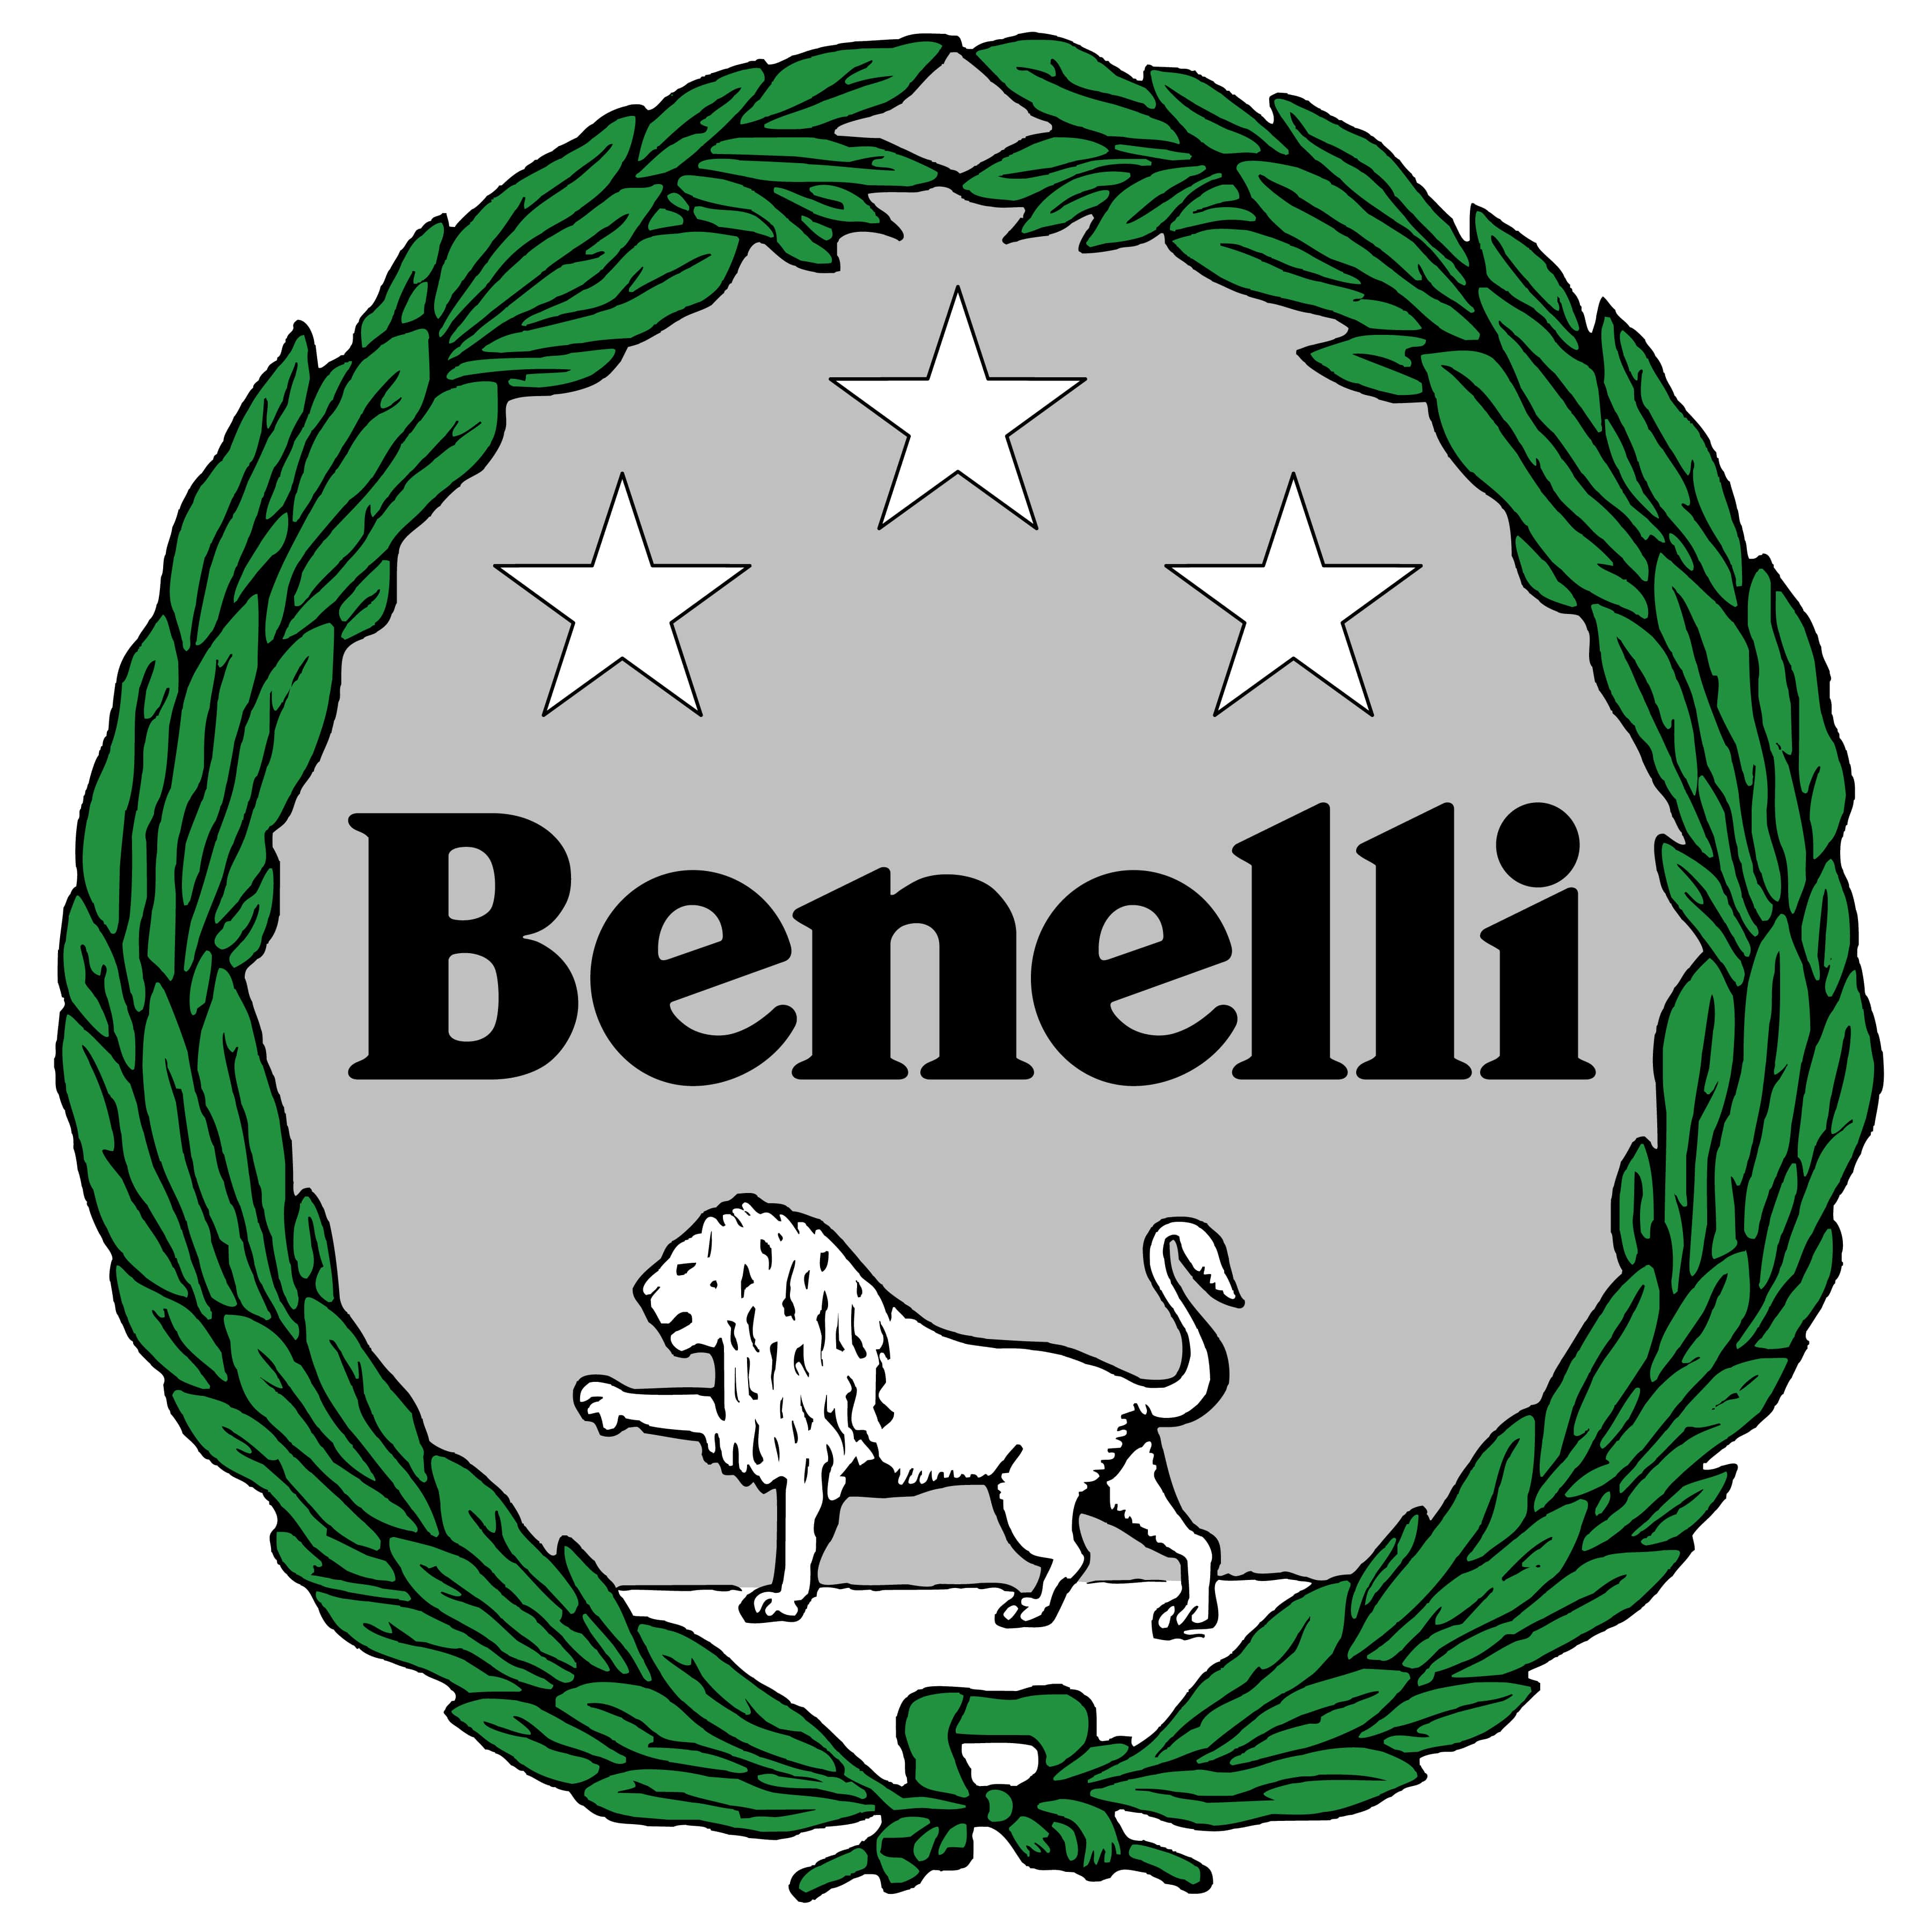 Benelli motorcycle logo history and Meaning, bike emblem.